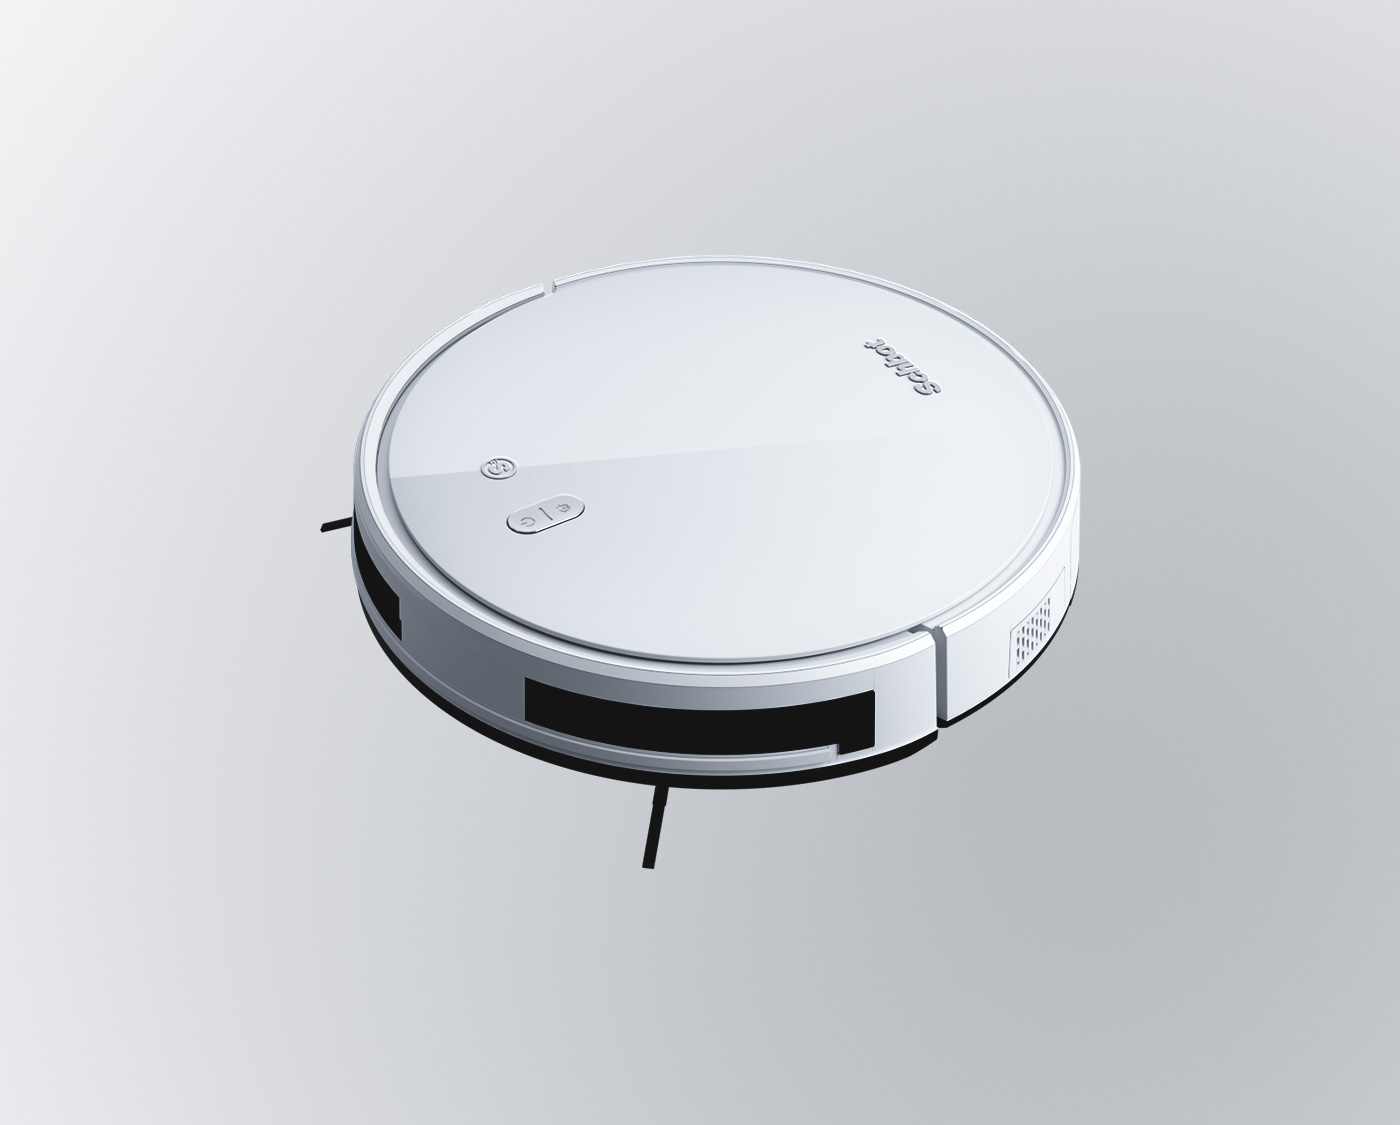 product rendering and 3d visualization schbot vacuum cleaner 12